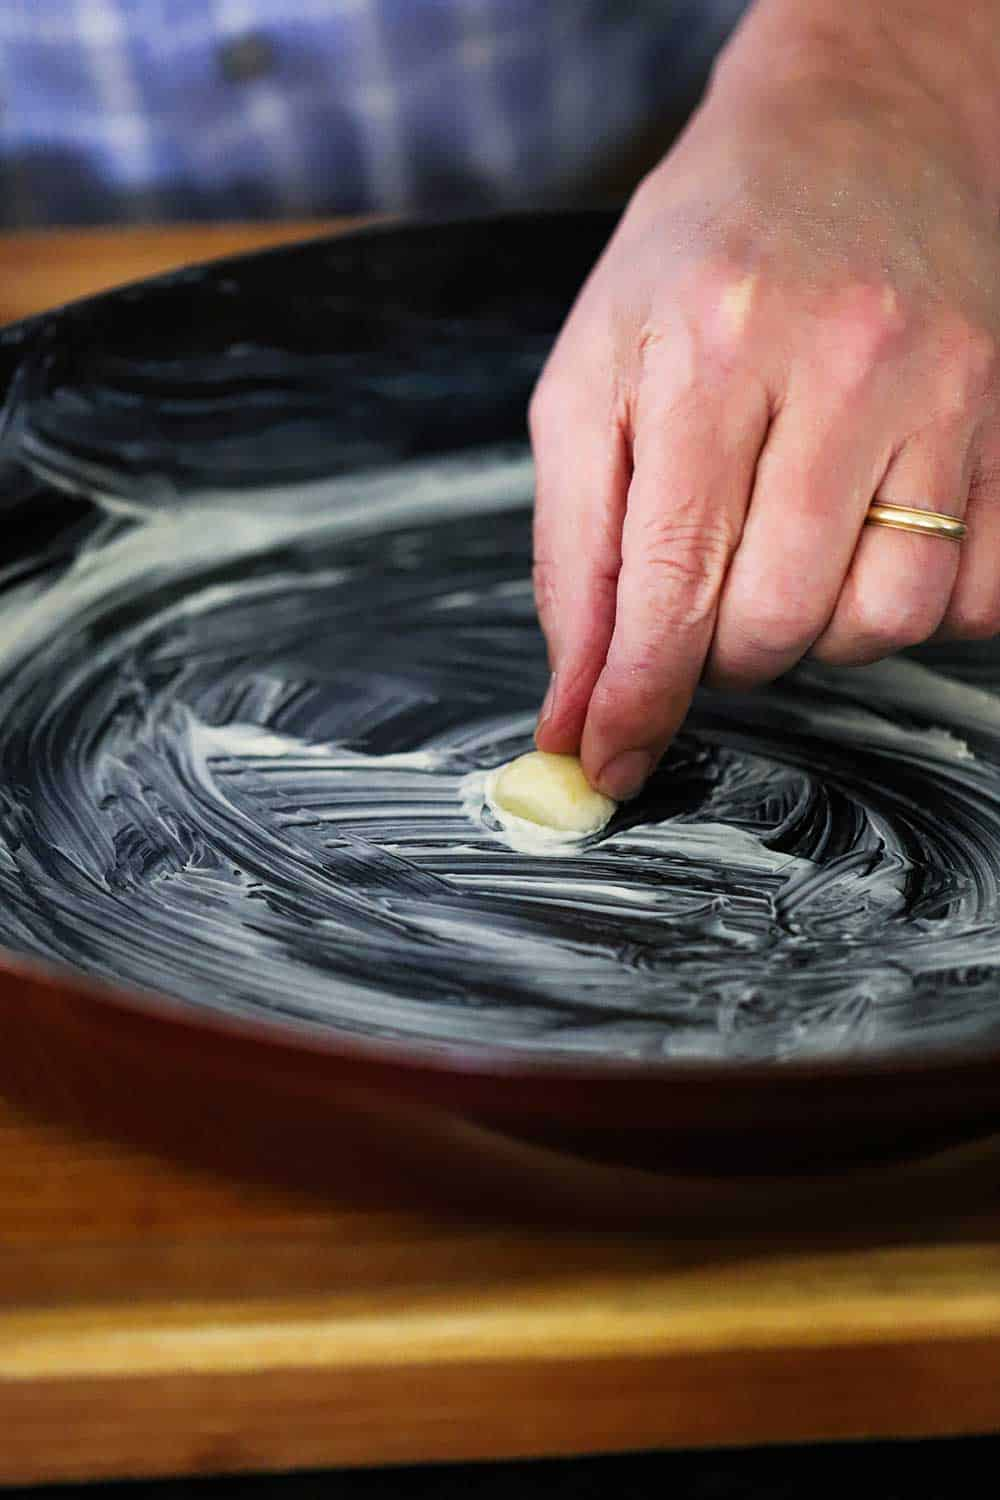 A hand pressing a halved clove of garlic in the bottom of a buttered oval baking dish.